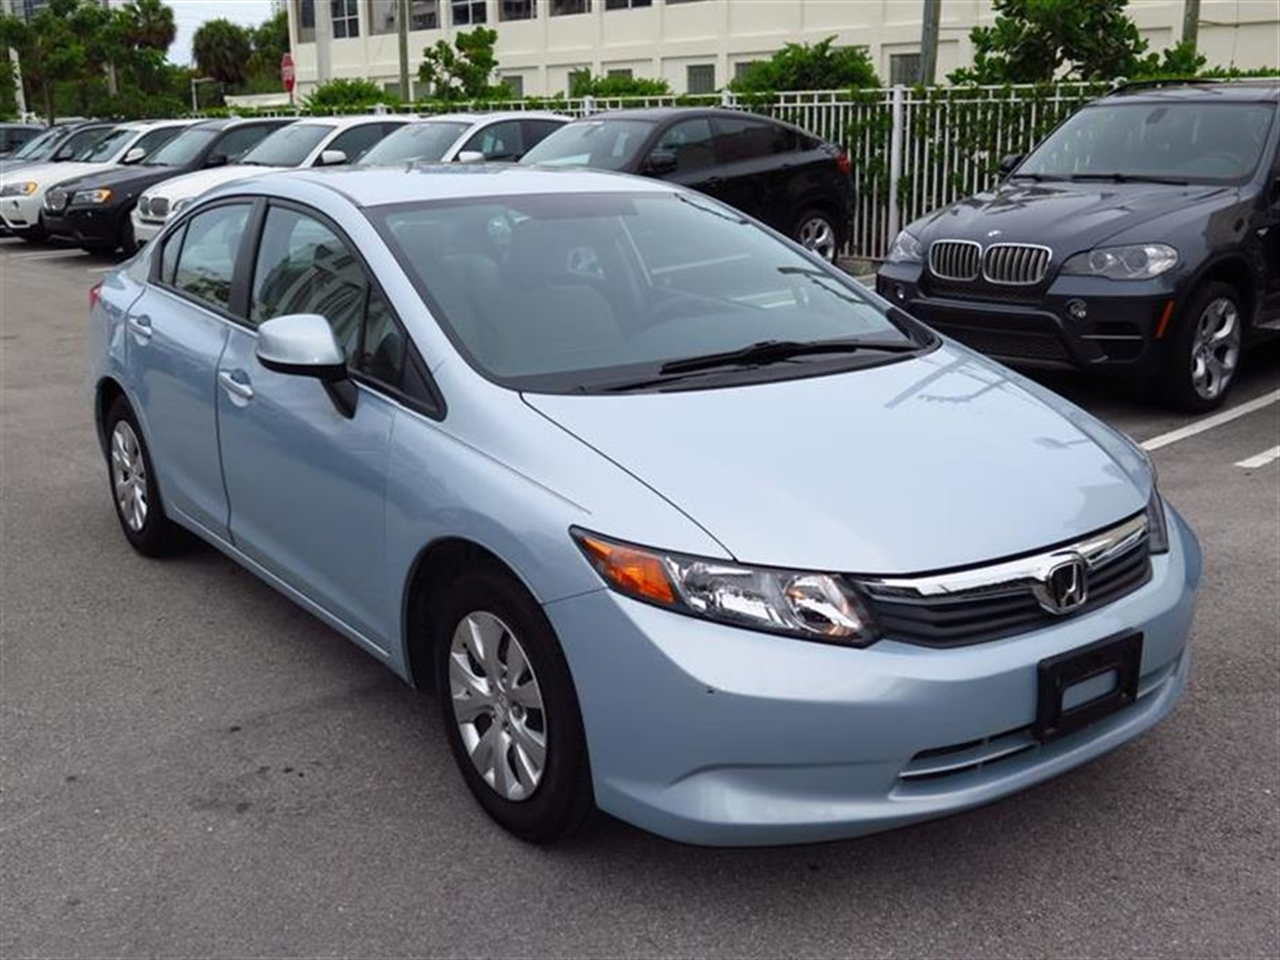 2012 HONDA CIVIC 4dr Auto LX 9620 miles 2-tier instrument panel wblue backlit gauges -inc tacho